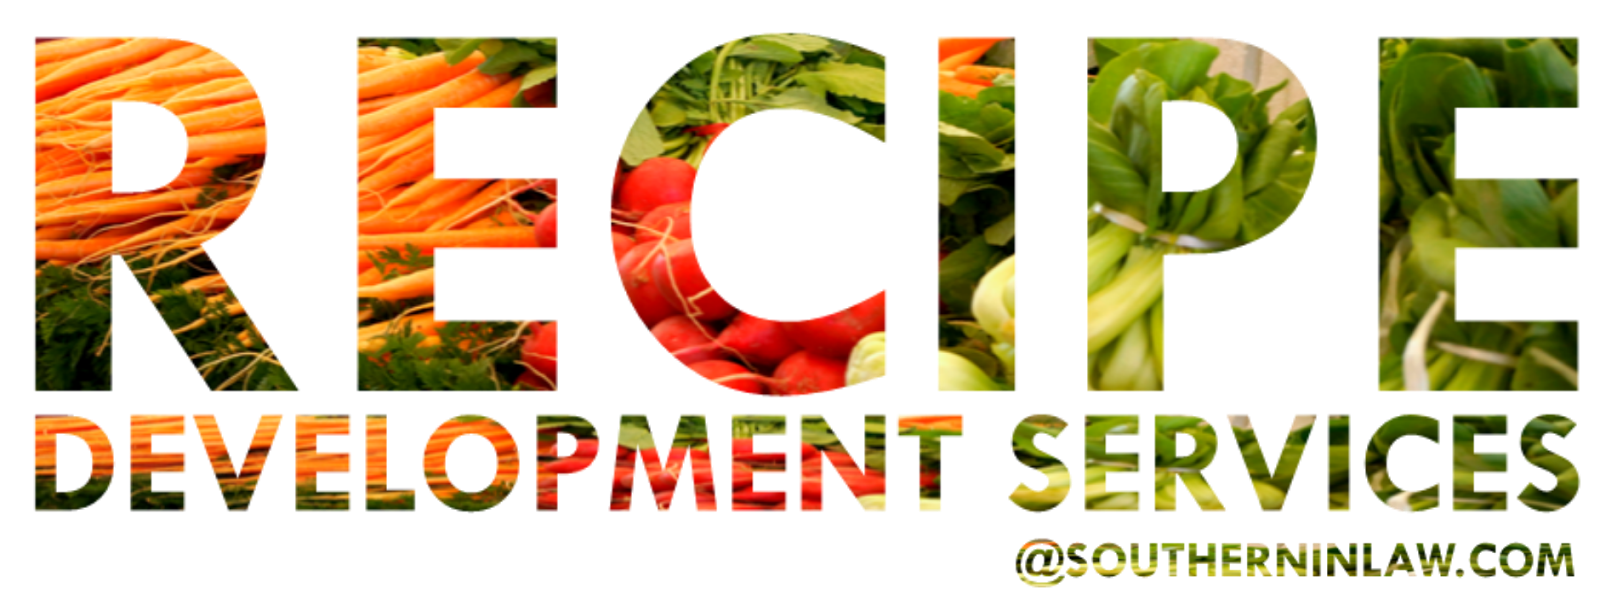 Freelance Recipe Development Services Sydney | Healthy Recipe Development and Testing